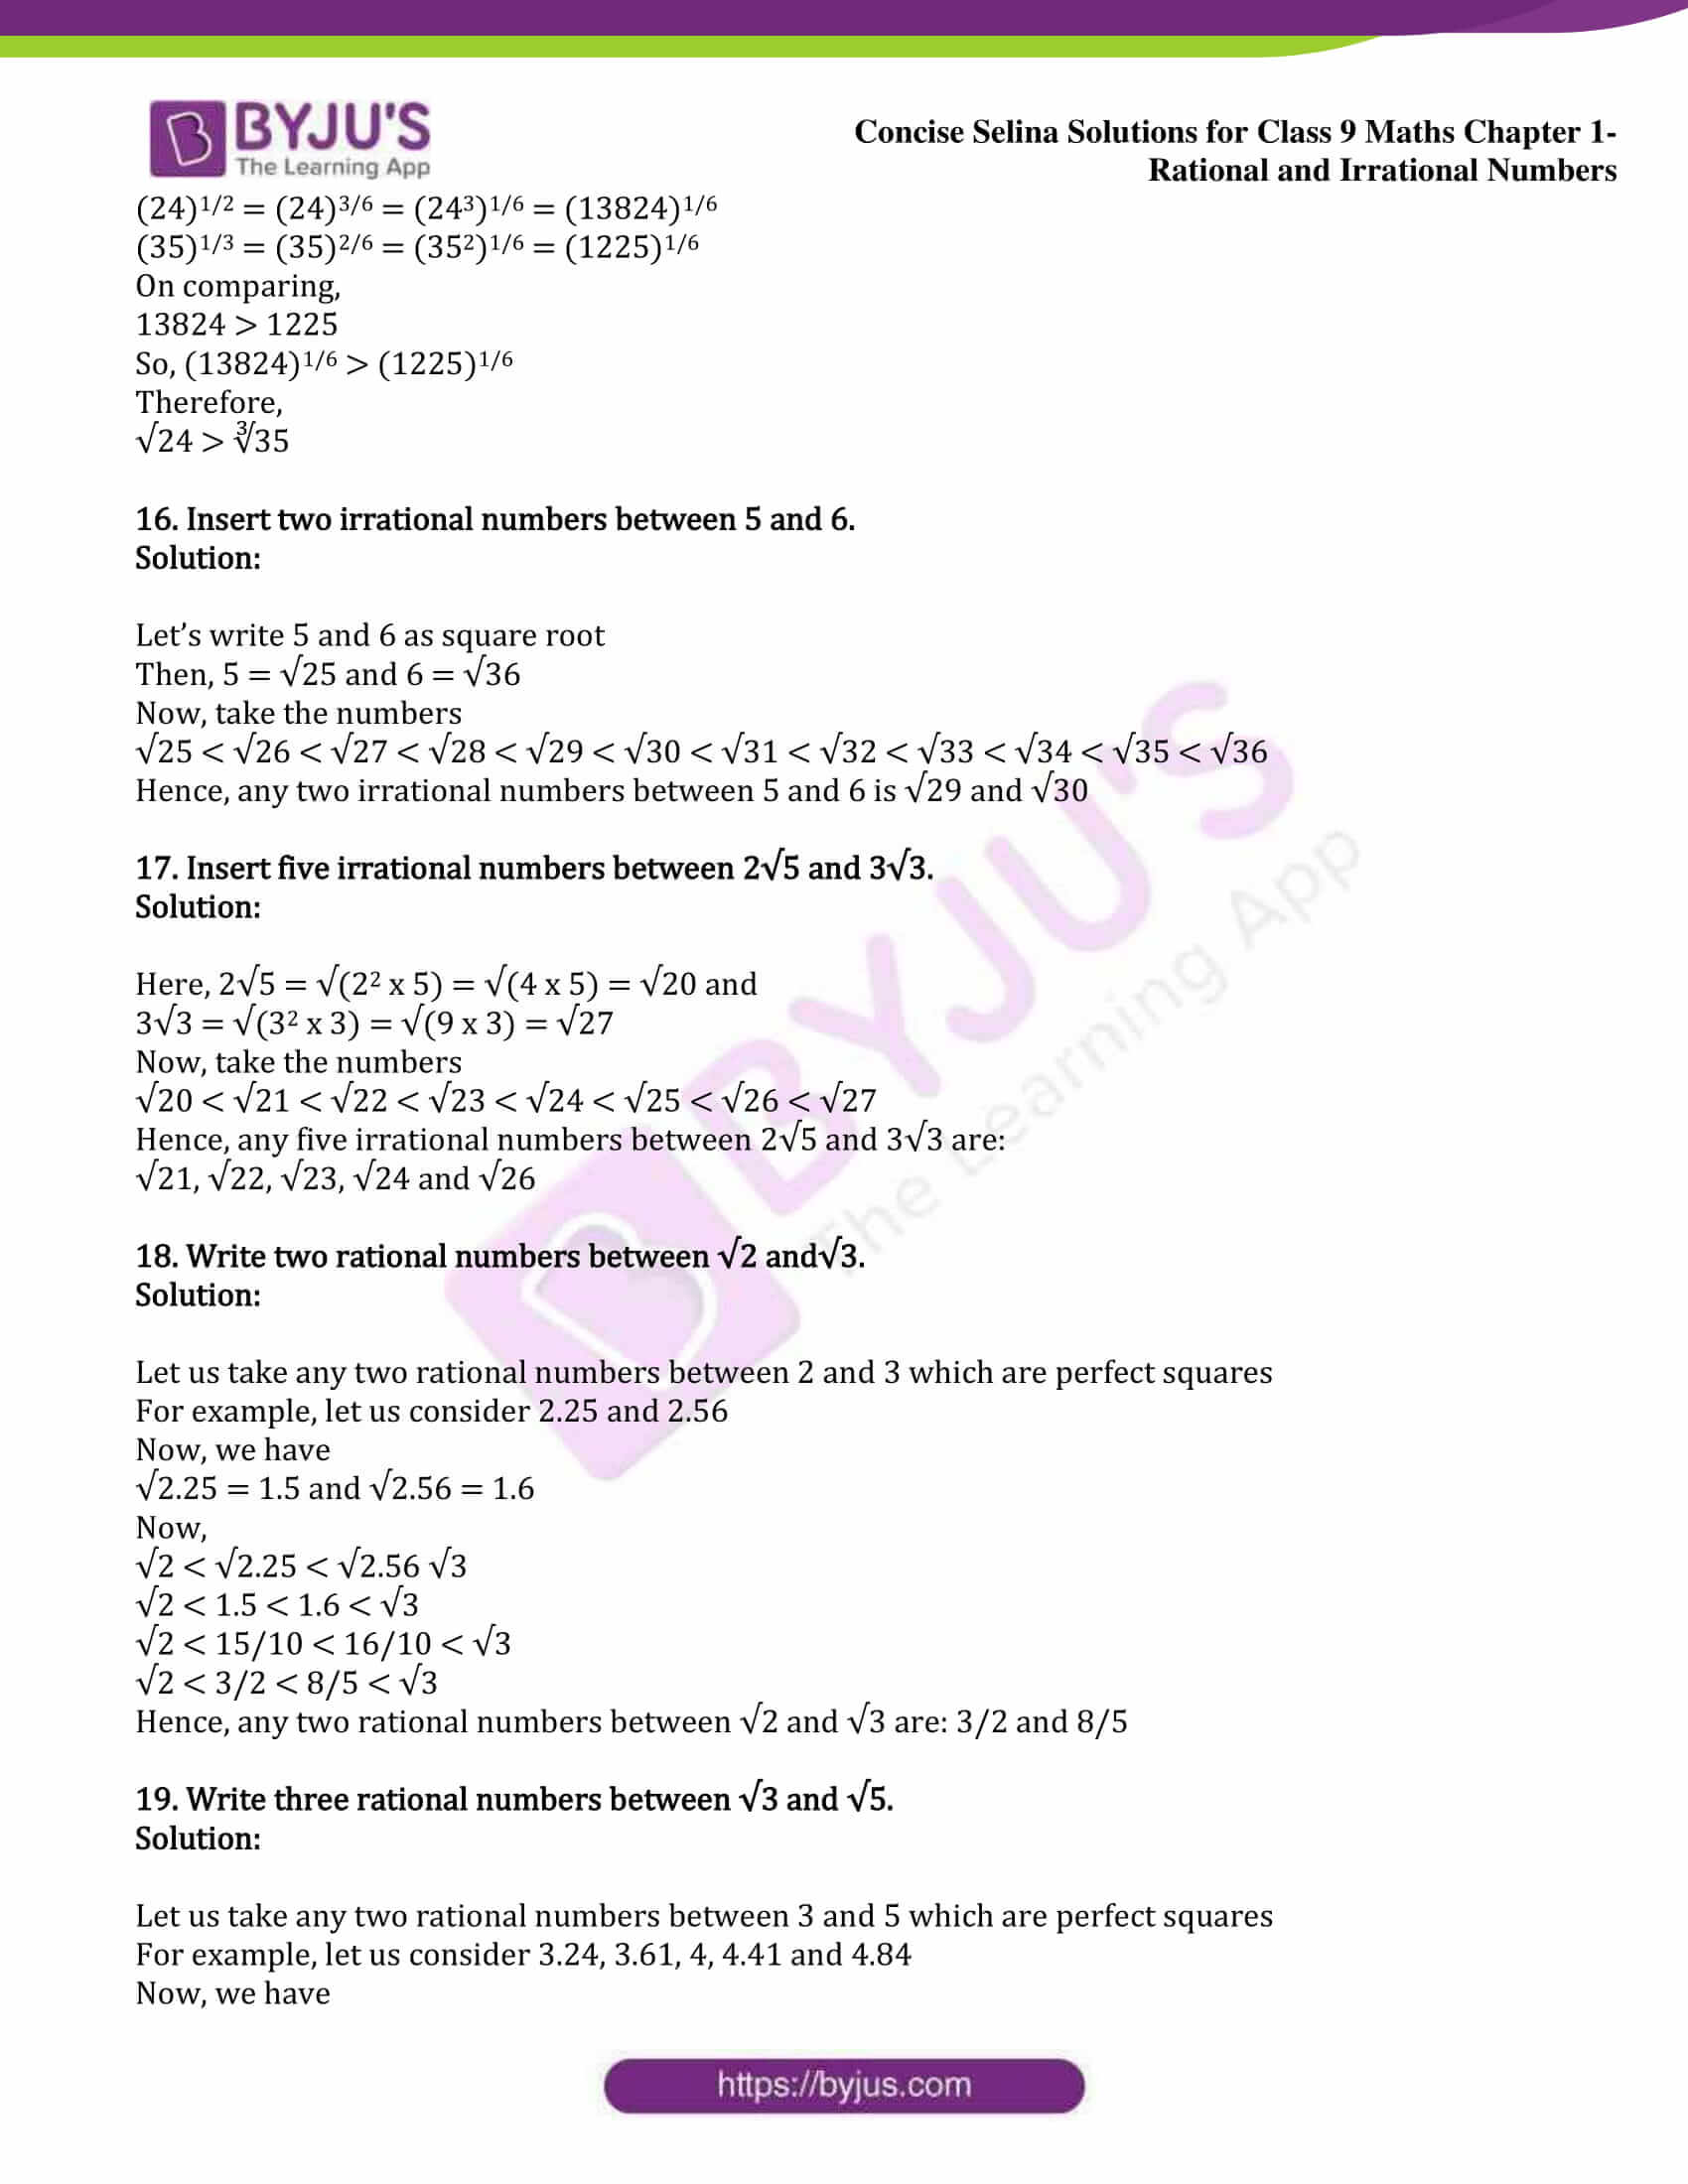 icse class 9 maths may13 selina solutions chapter 1 rational and irrational numbers 13